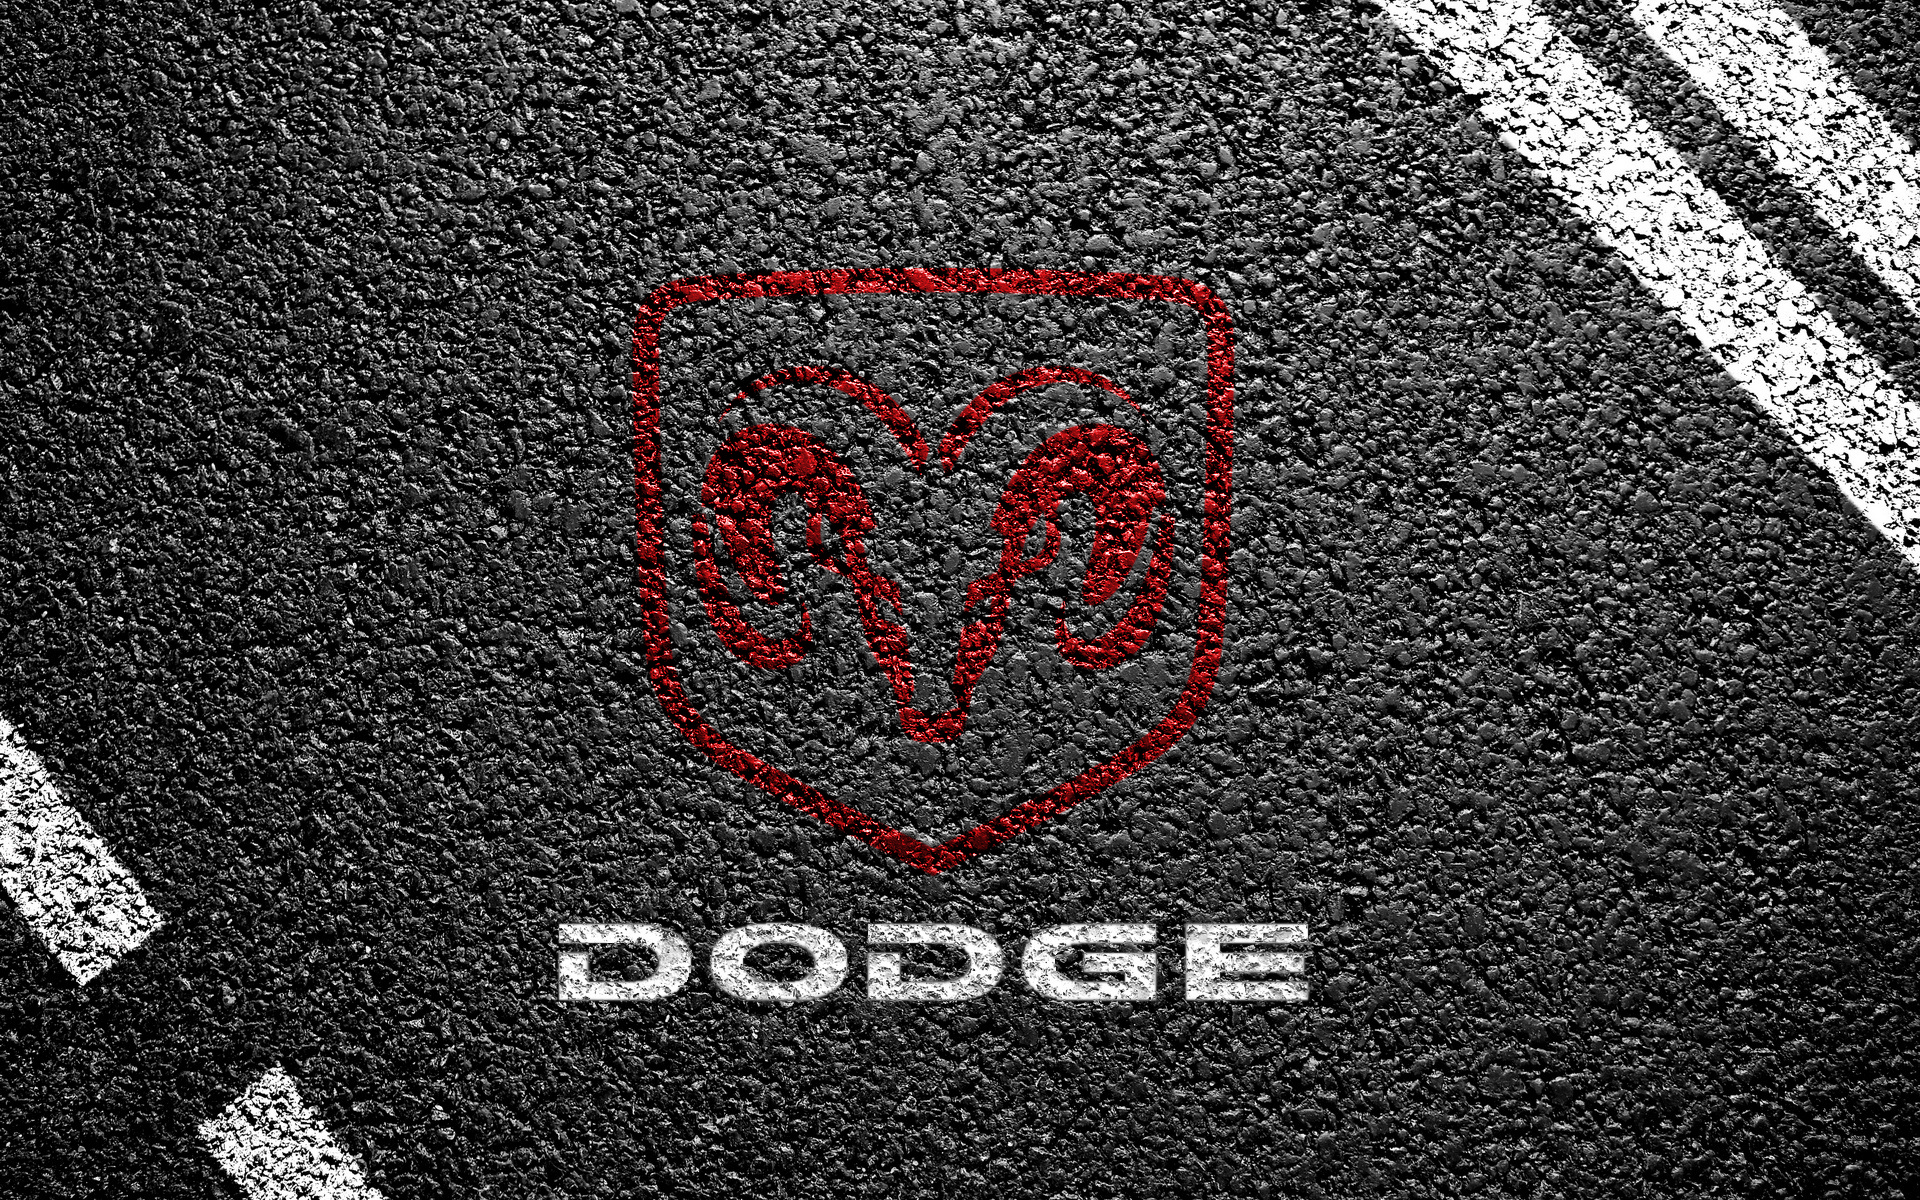 Dodge Wallpaper Wallpapersafari